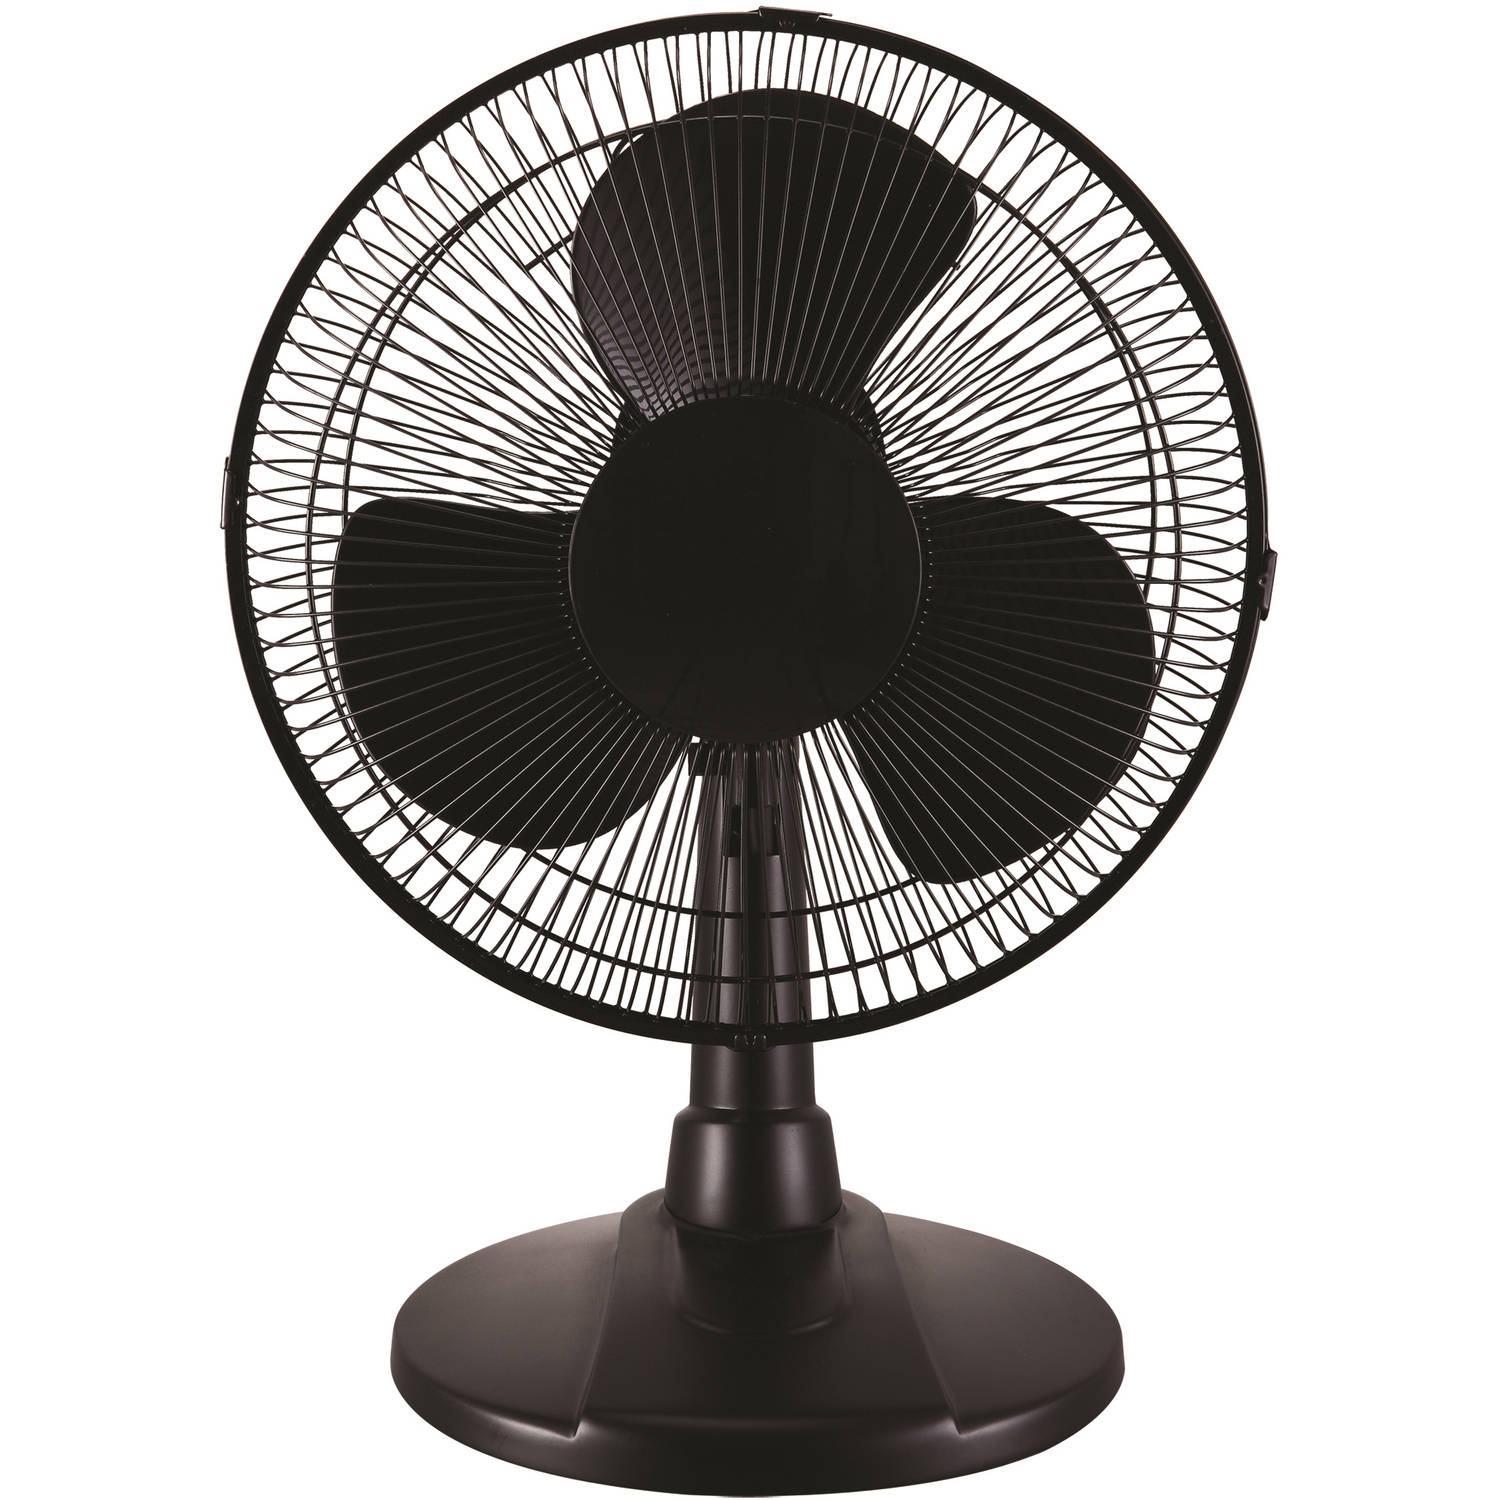 Mainstays 12 Quot Oscillating Table Fan With 3 Speeds